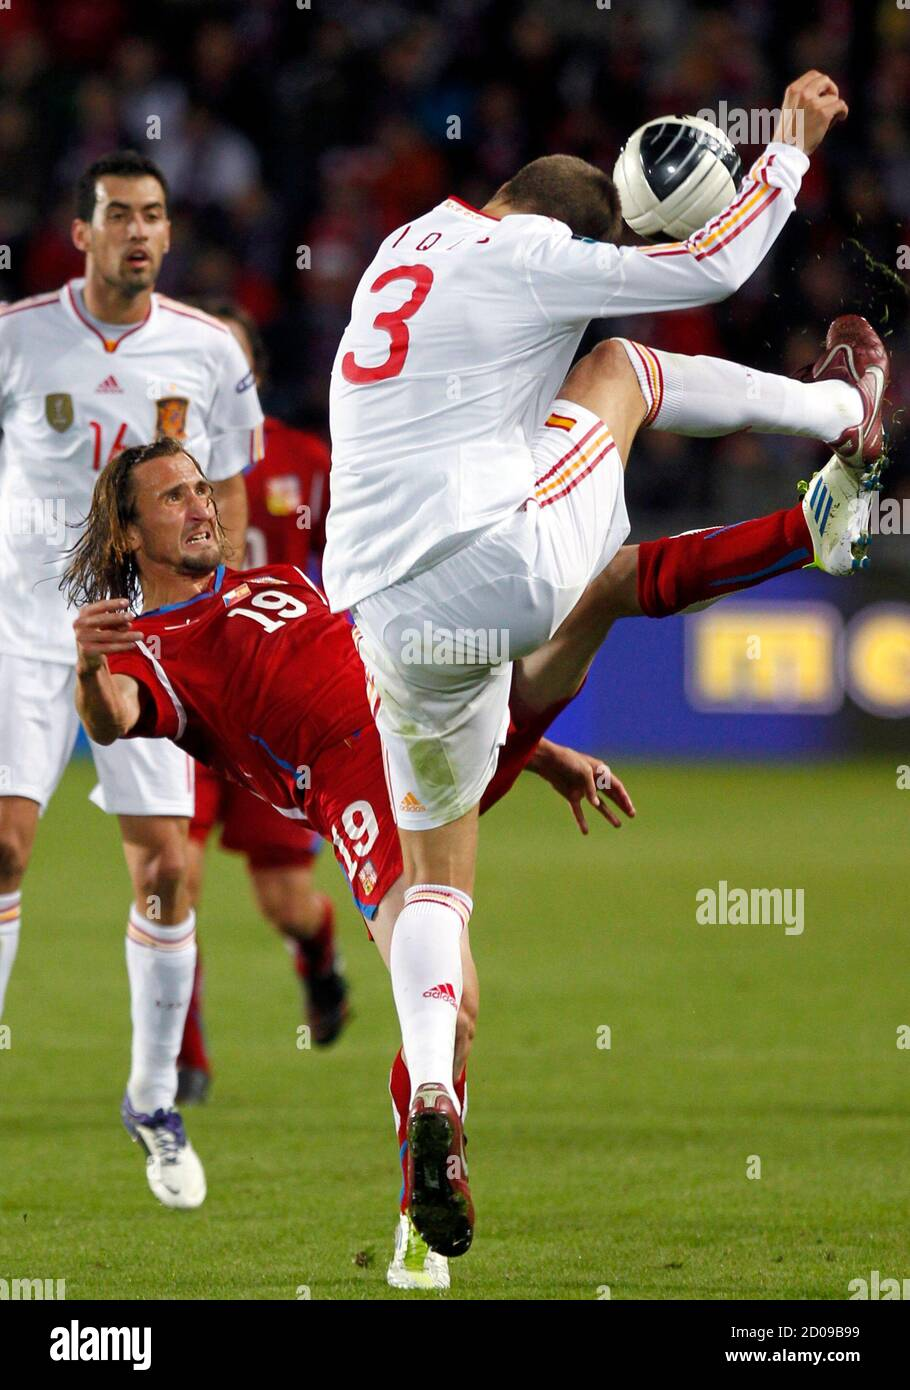 Petr Jiracek (L) of the Czech Republic challenges Gerard Pique of Spain during their Euro 2012 Group I qualifying soccer match in Prague October 7, 2011.   REUTERS/Petr Josek (CZECH REPUBLIC - Tags: SPORT SOCCER) Foto de stock